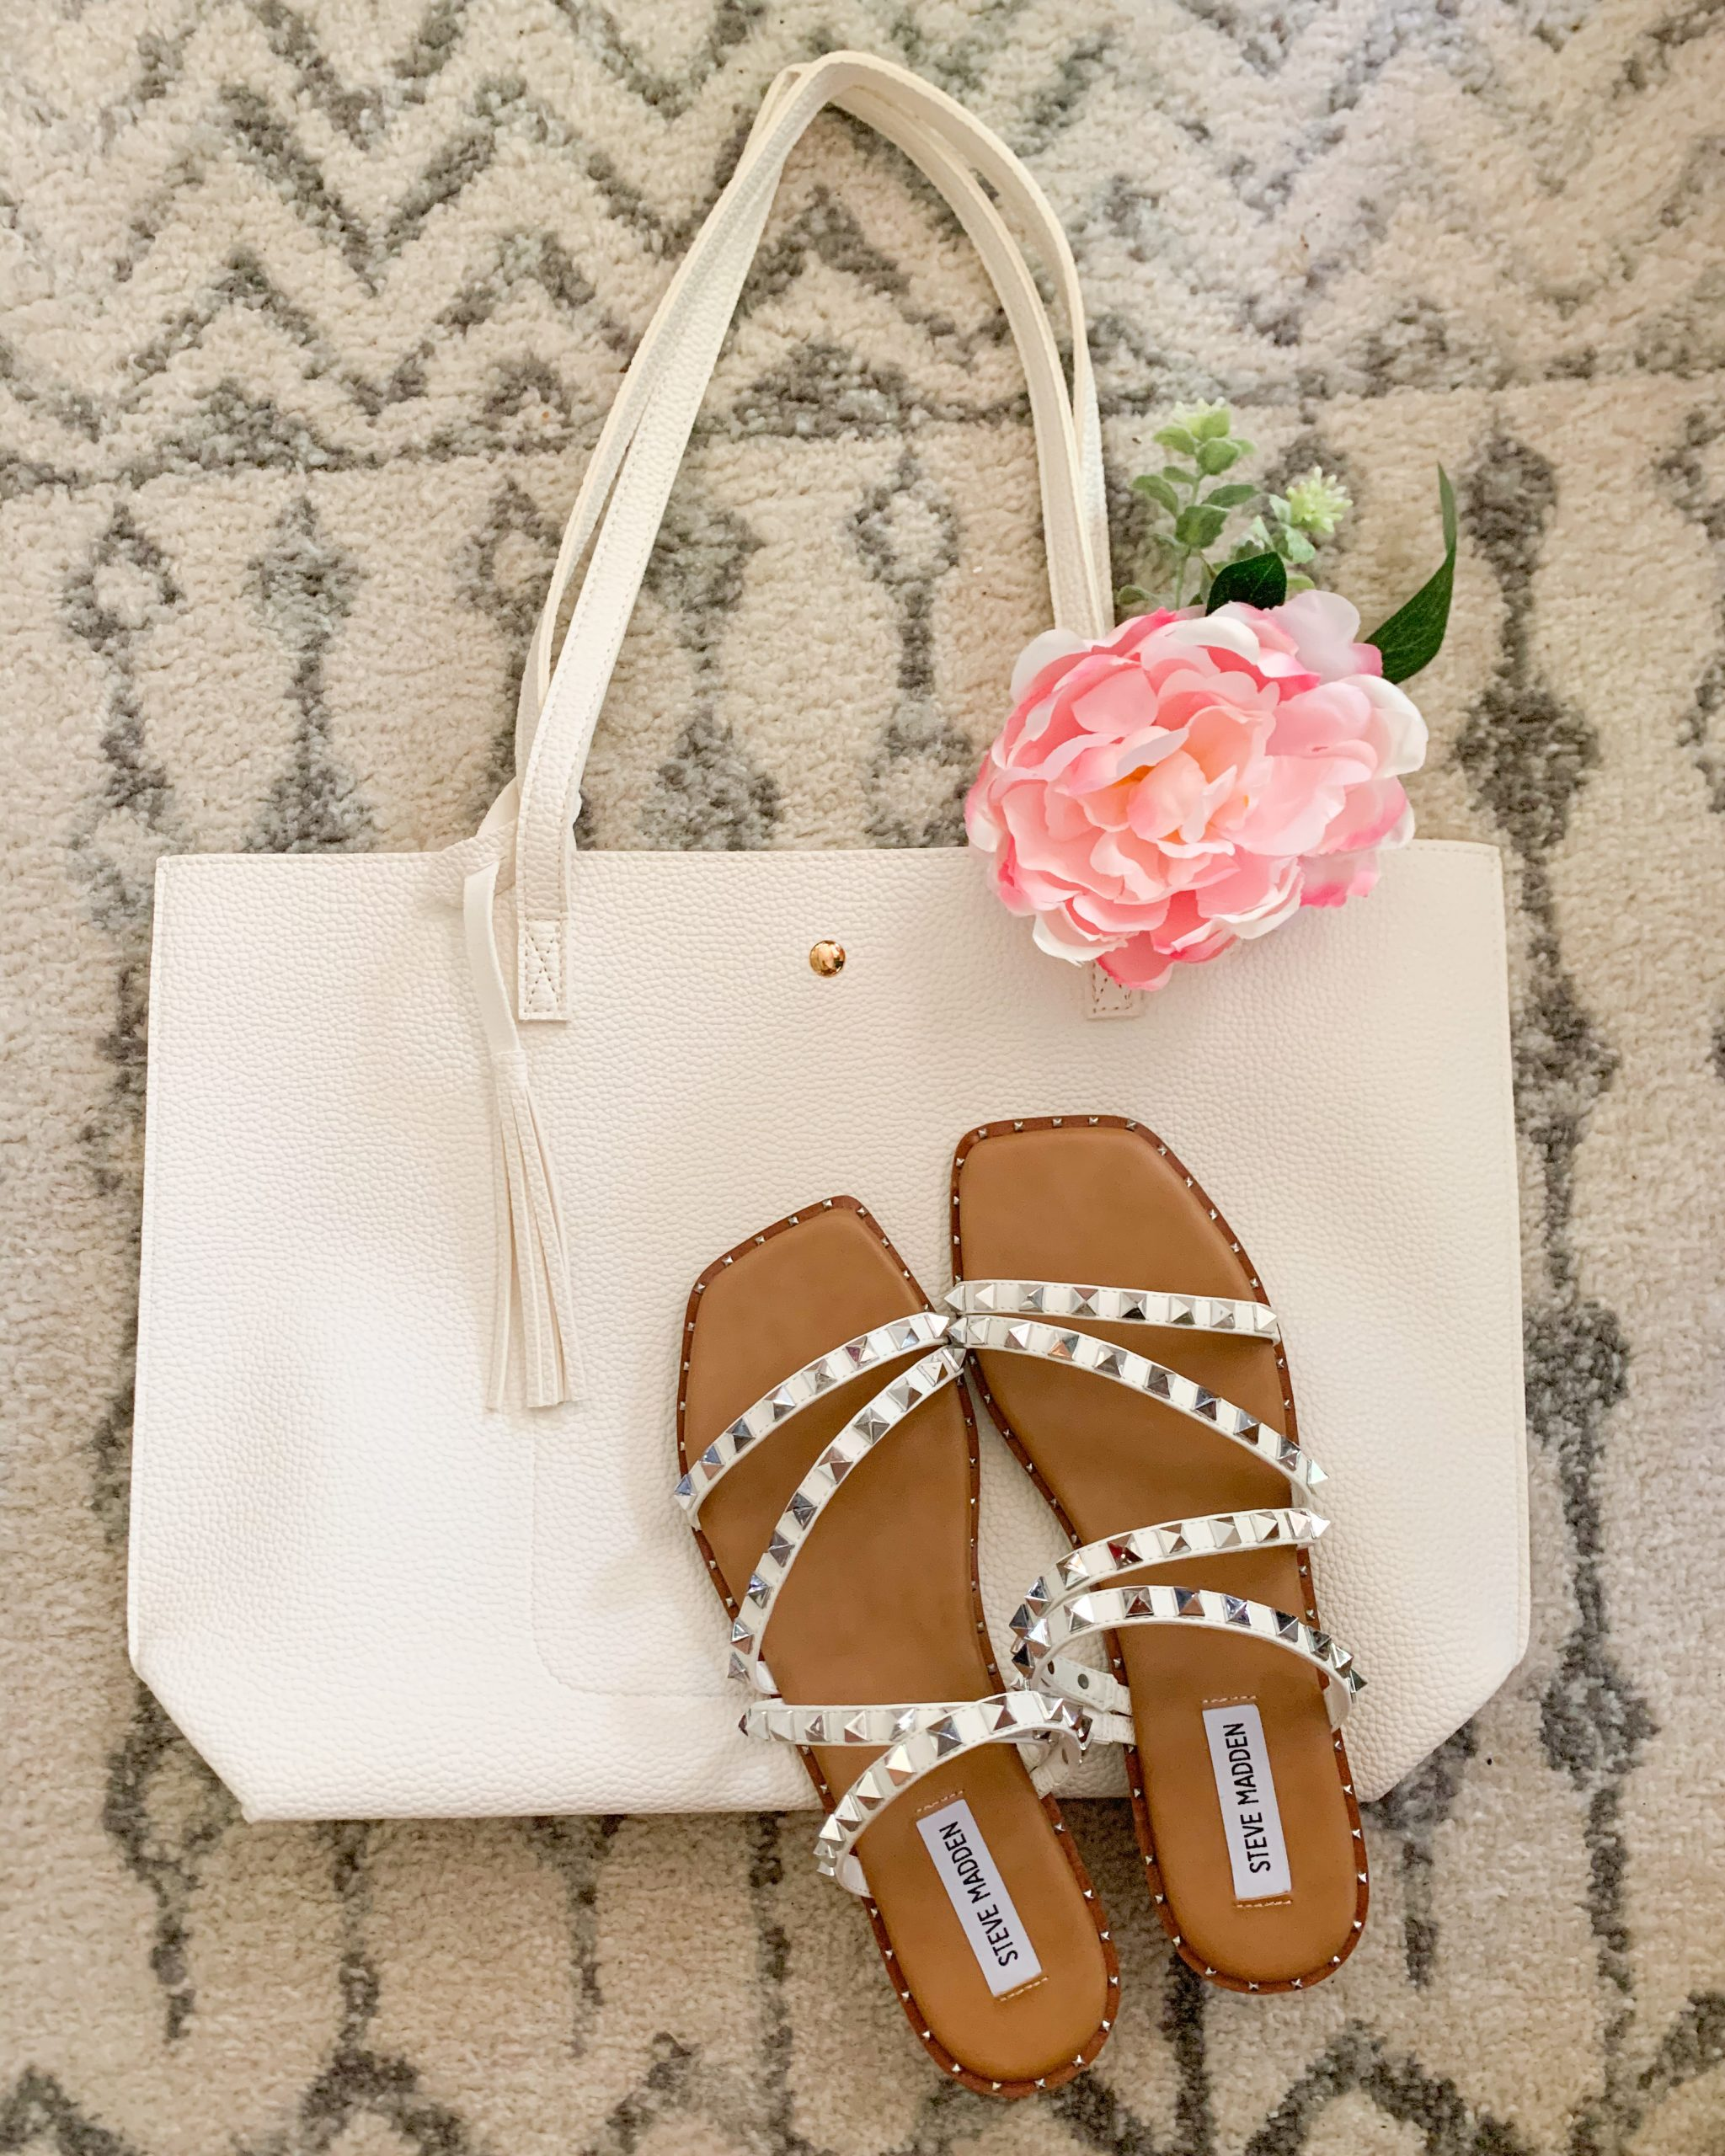 This affordable mom tote bag from Amazon is a must have! It comes in a wide variety of colors at a budget friendly price point. White tote bag and white Steve Madden Skylar studded sandals.